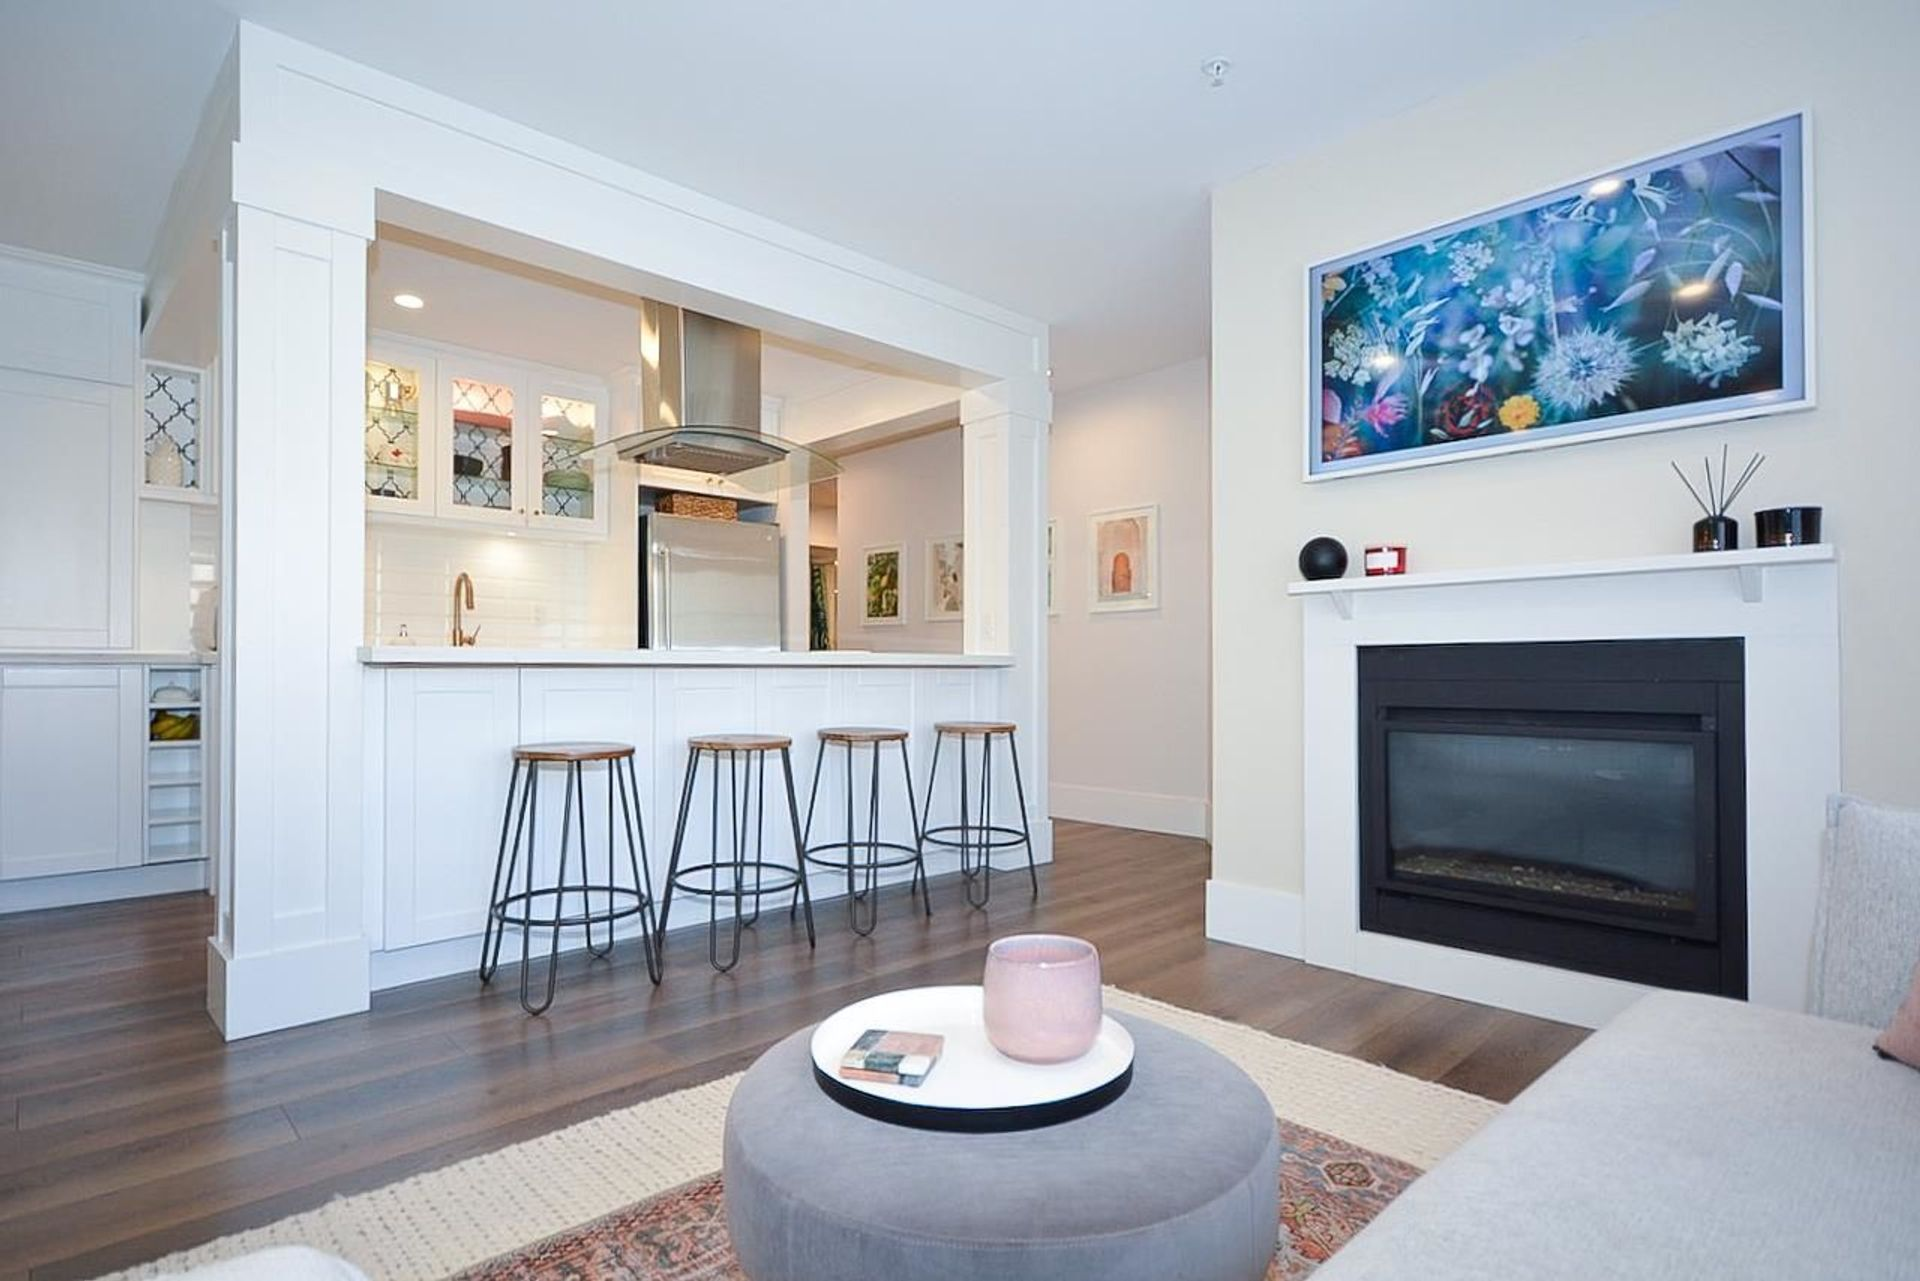 910-w-8th-avenue-fairview-vw-vancouver-west-08 at